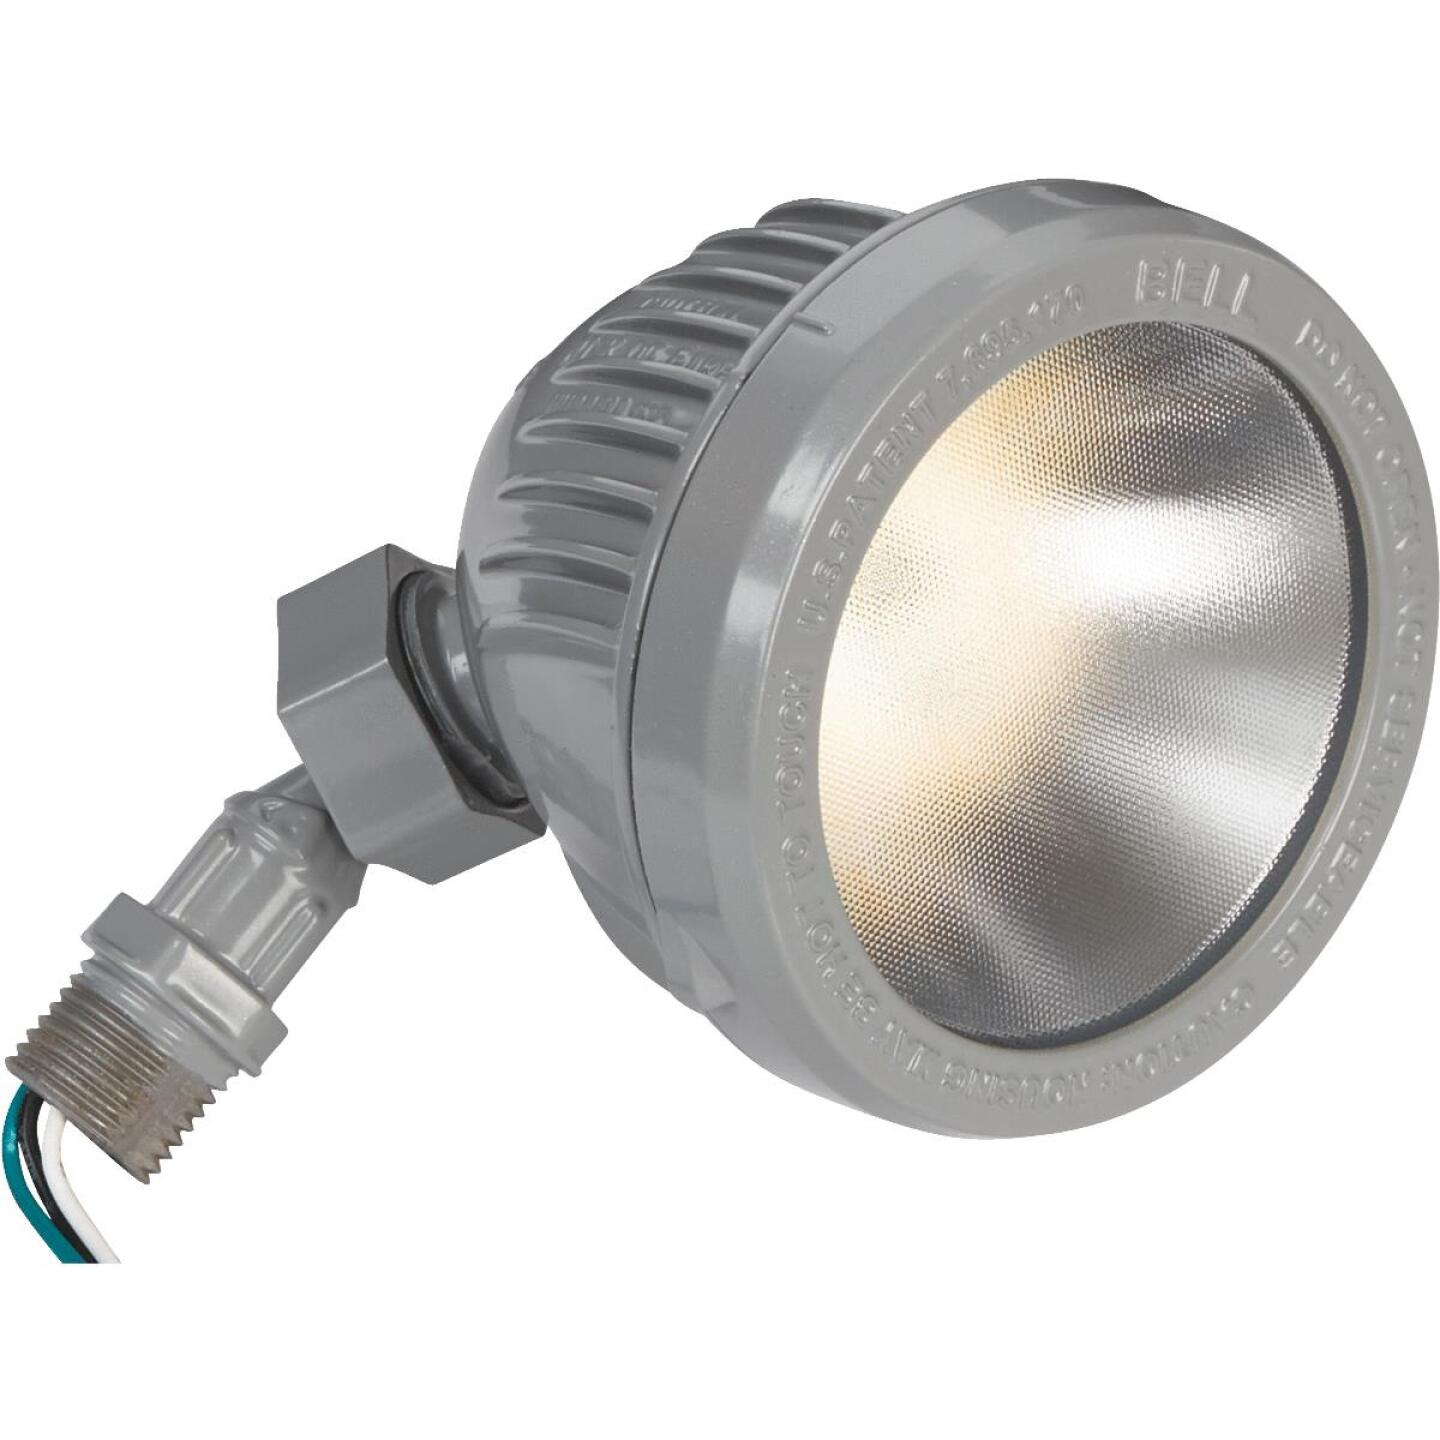 Bell Gray 13W Die-Cast Metal Floodlight Outdoor Lampholder Image 3